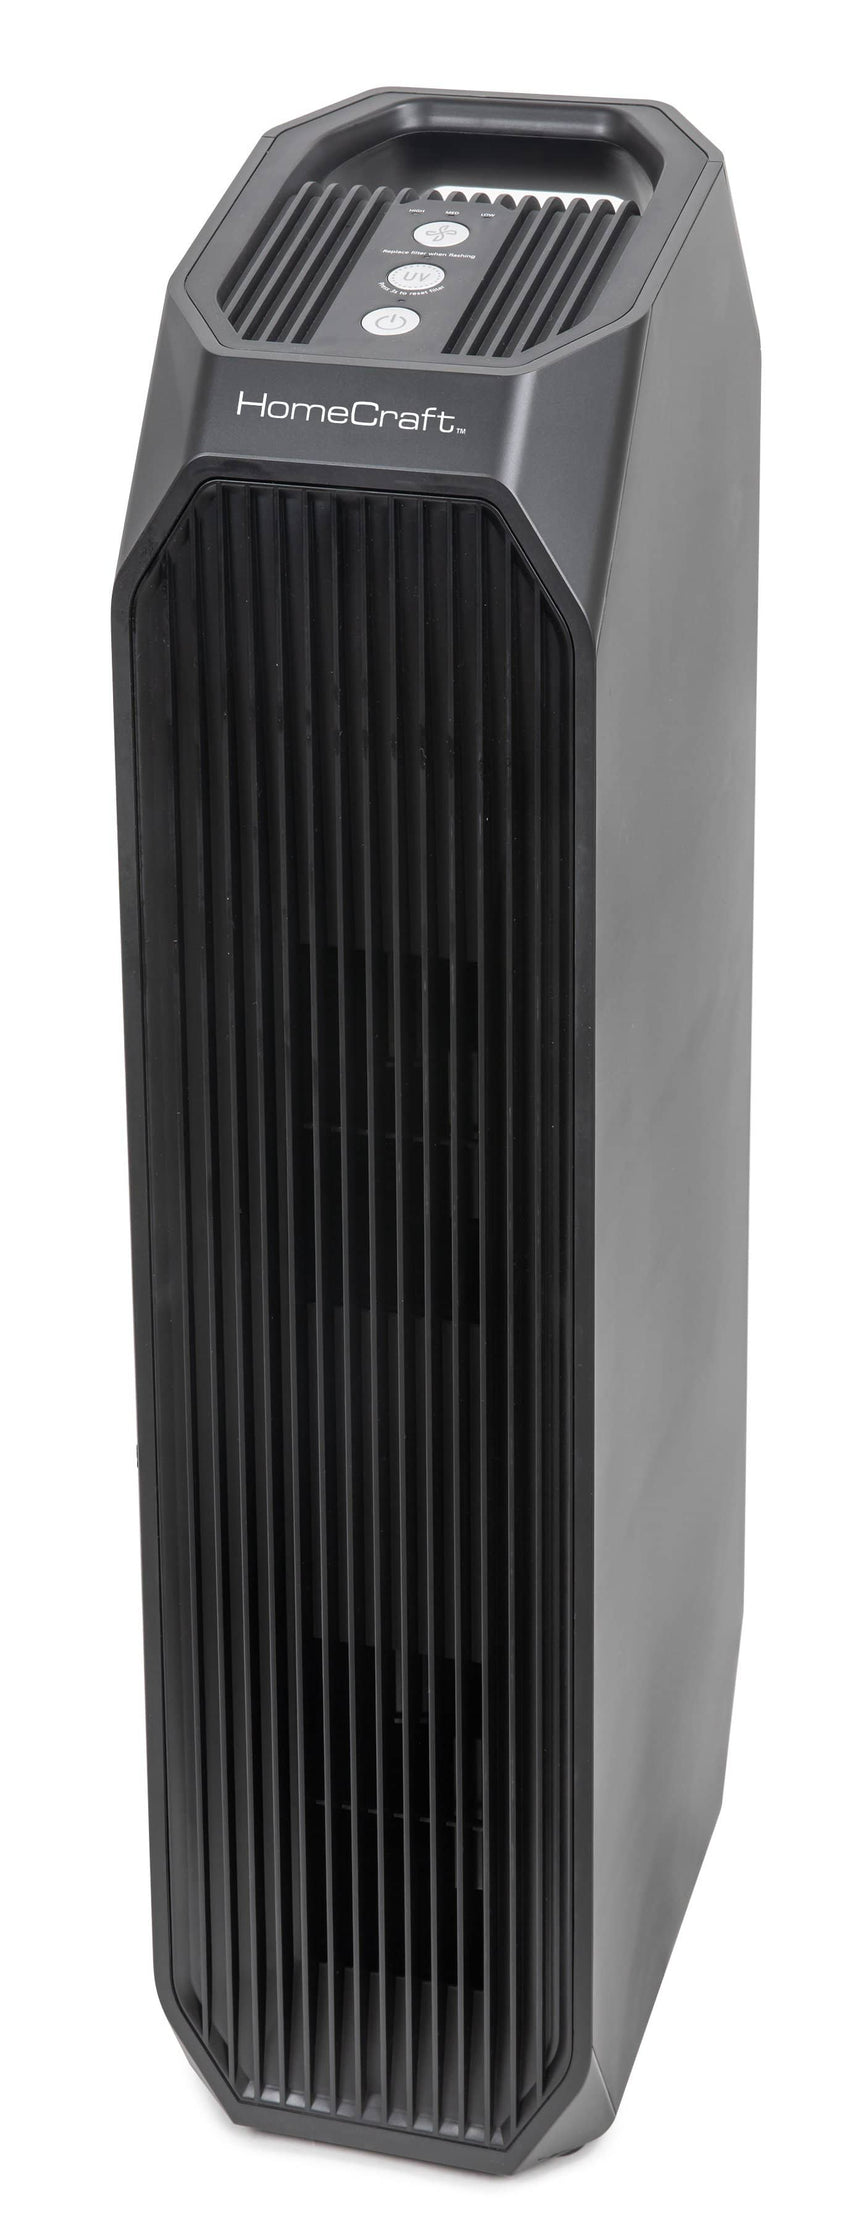 HomeCraft™ Instant Clean Air Purifier Filters